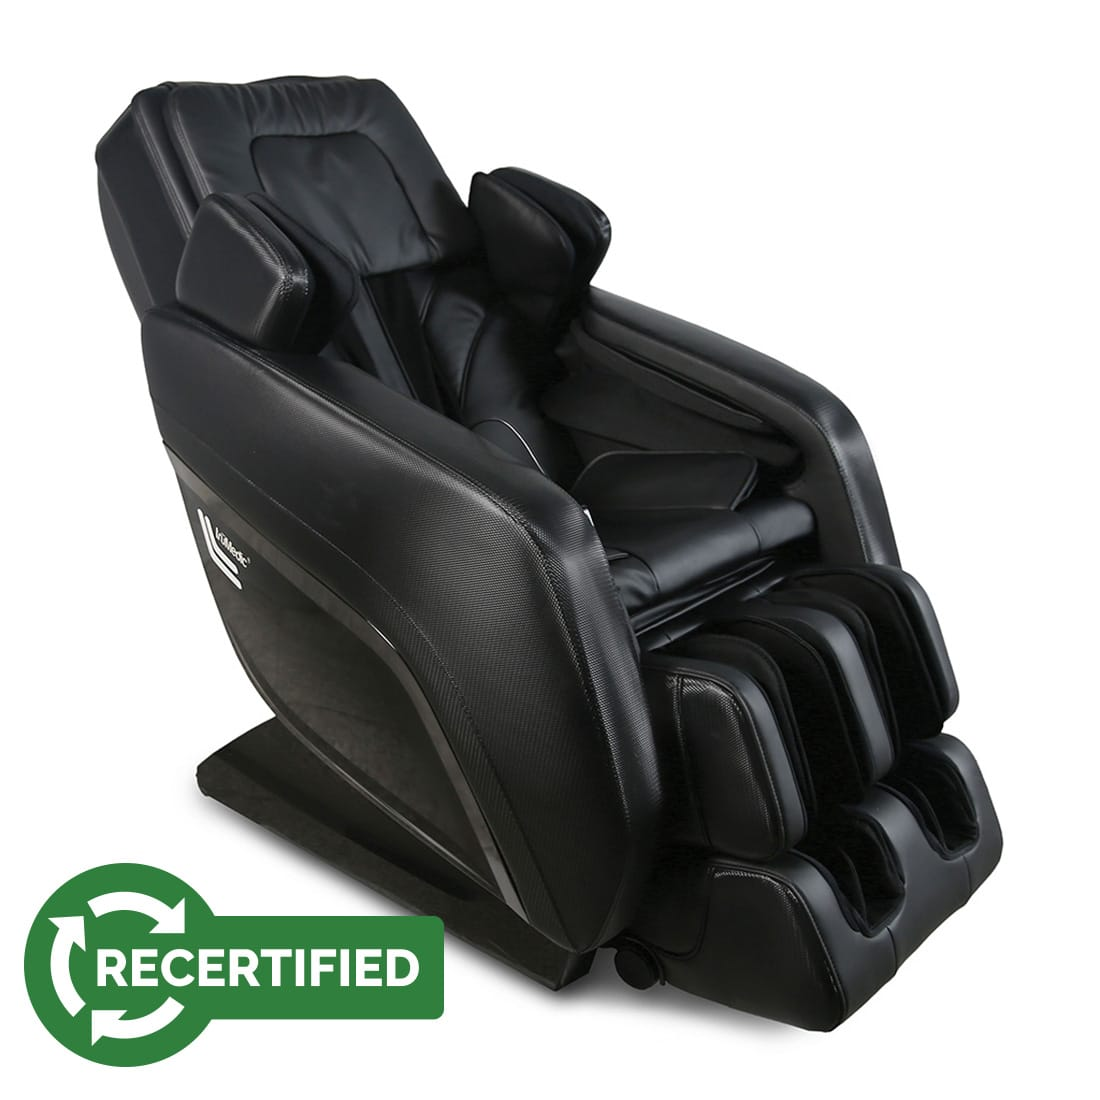 Recertified InstaShiatsu+ Massage Chair MC-1000 - truMedic